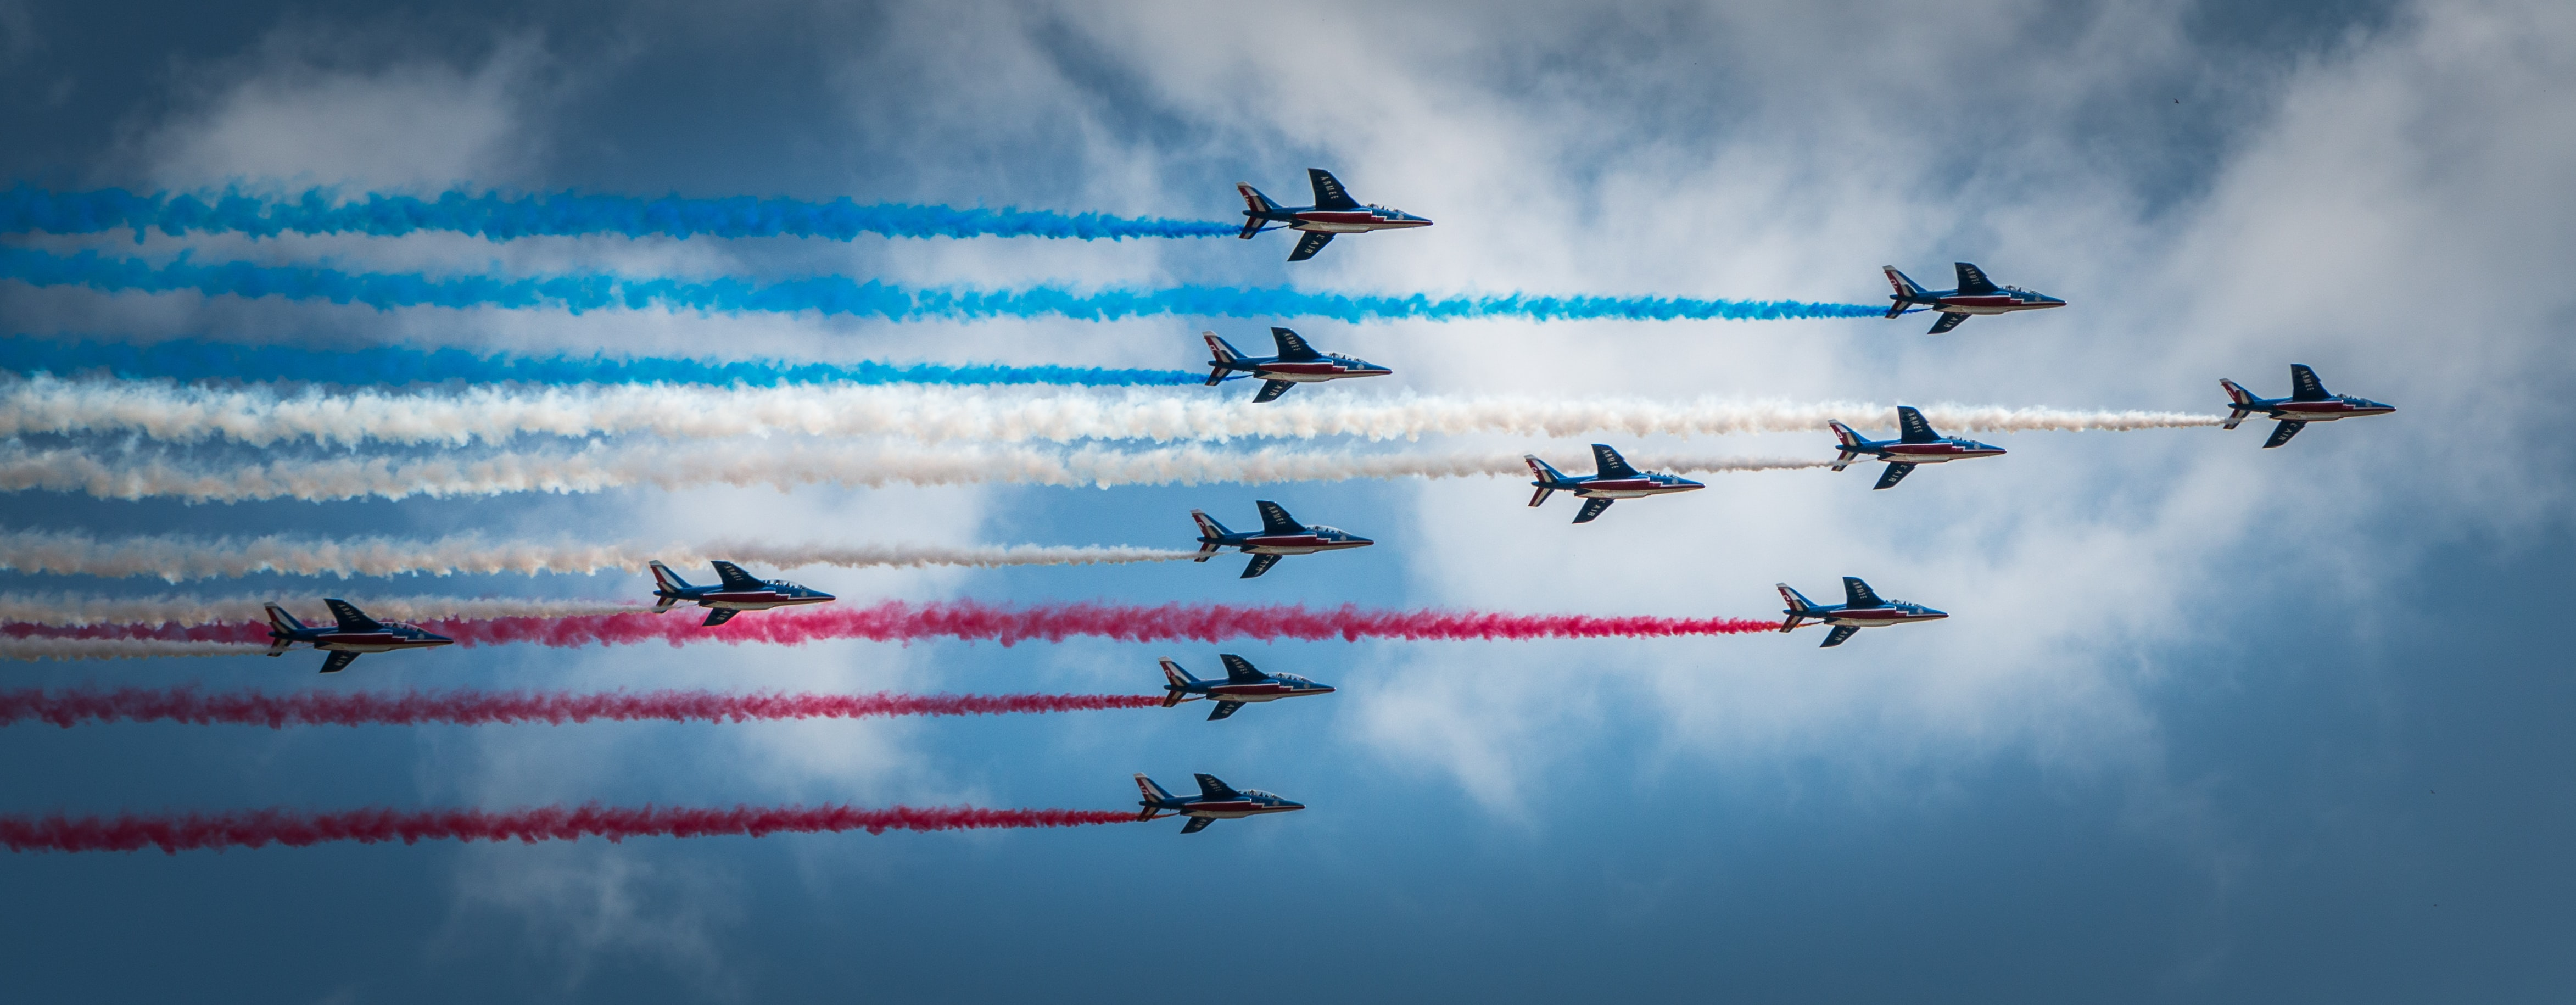 time lapse photography of airshow